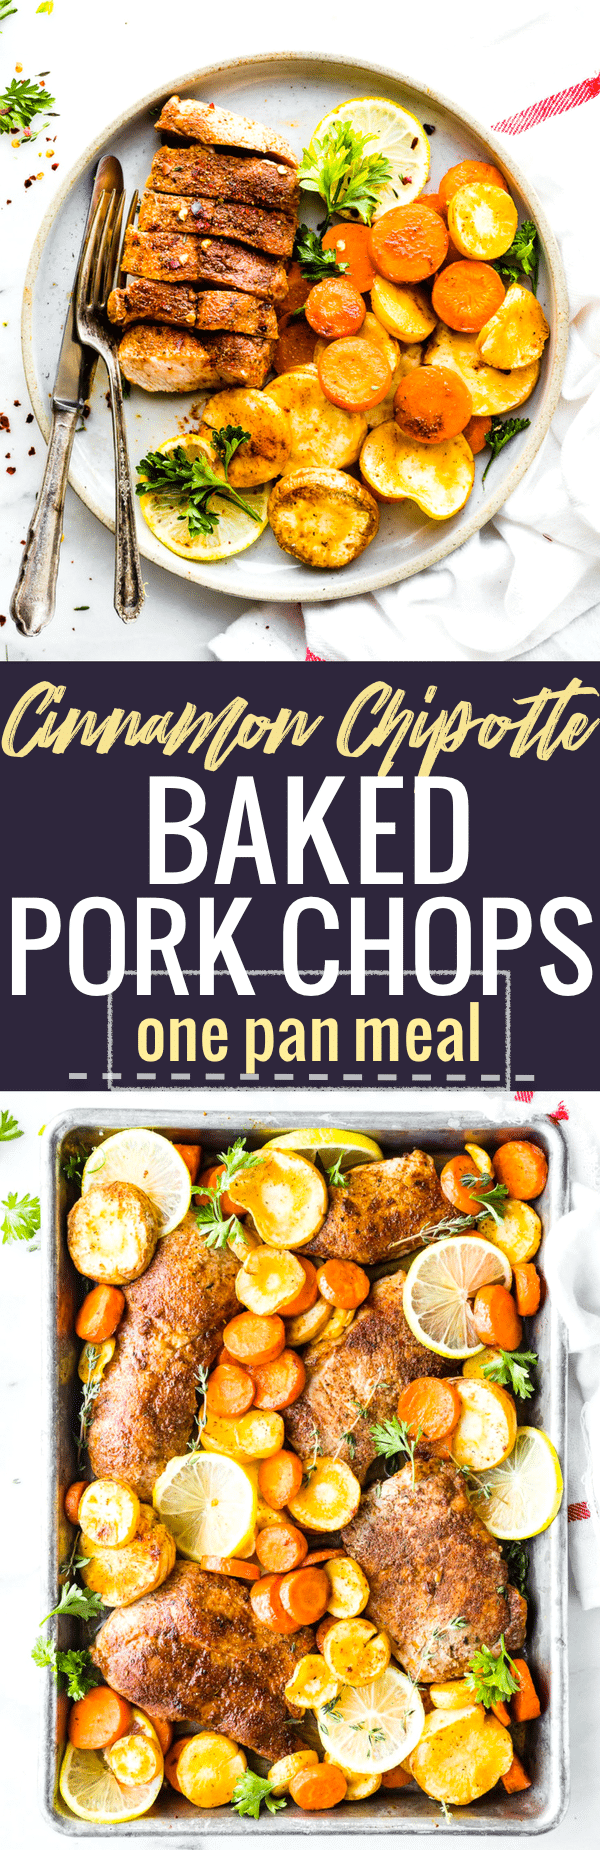 ThisCinnamon Chipotle Baked Pork Chops with parsnips and carrots makes an easy one pan meal. Boneless baked pork chops rubbed in a sweet smokey seasoning, roasted veggies, and herbs to garnish. A paleo meal ready in 30 minutes. www.cottercrunch.com #paleo #quickrecipe #healthy #sheetpan